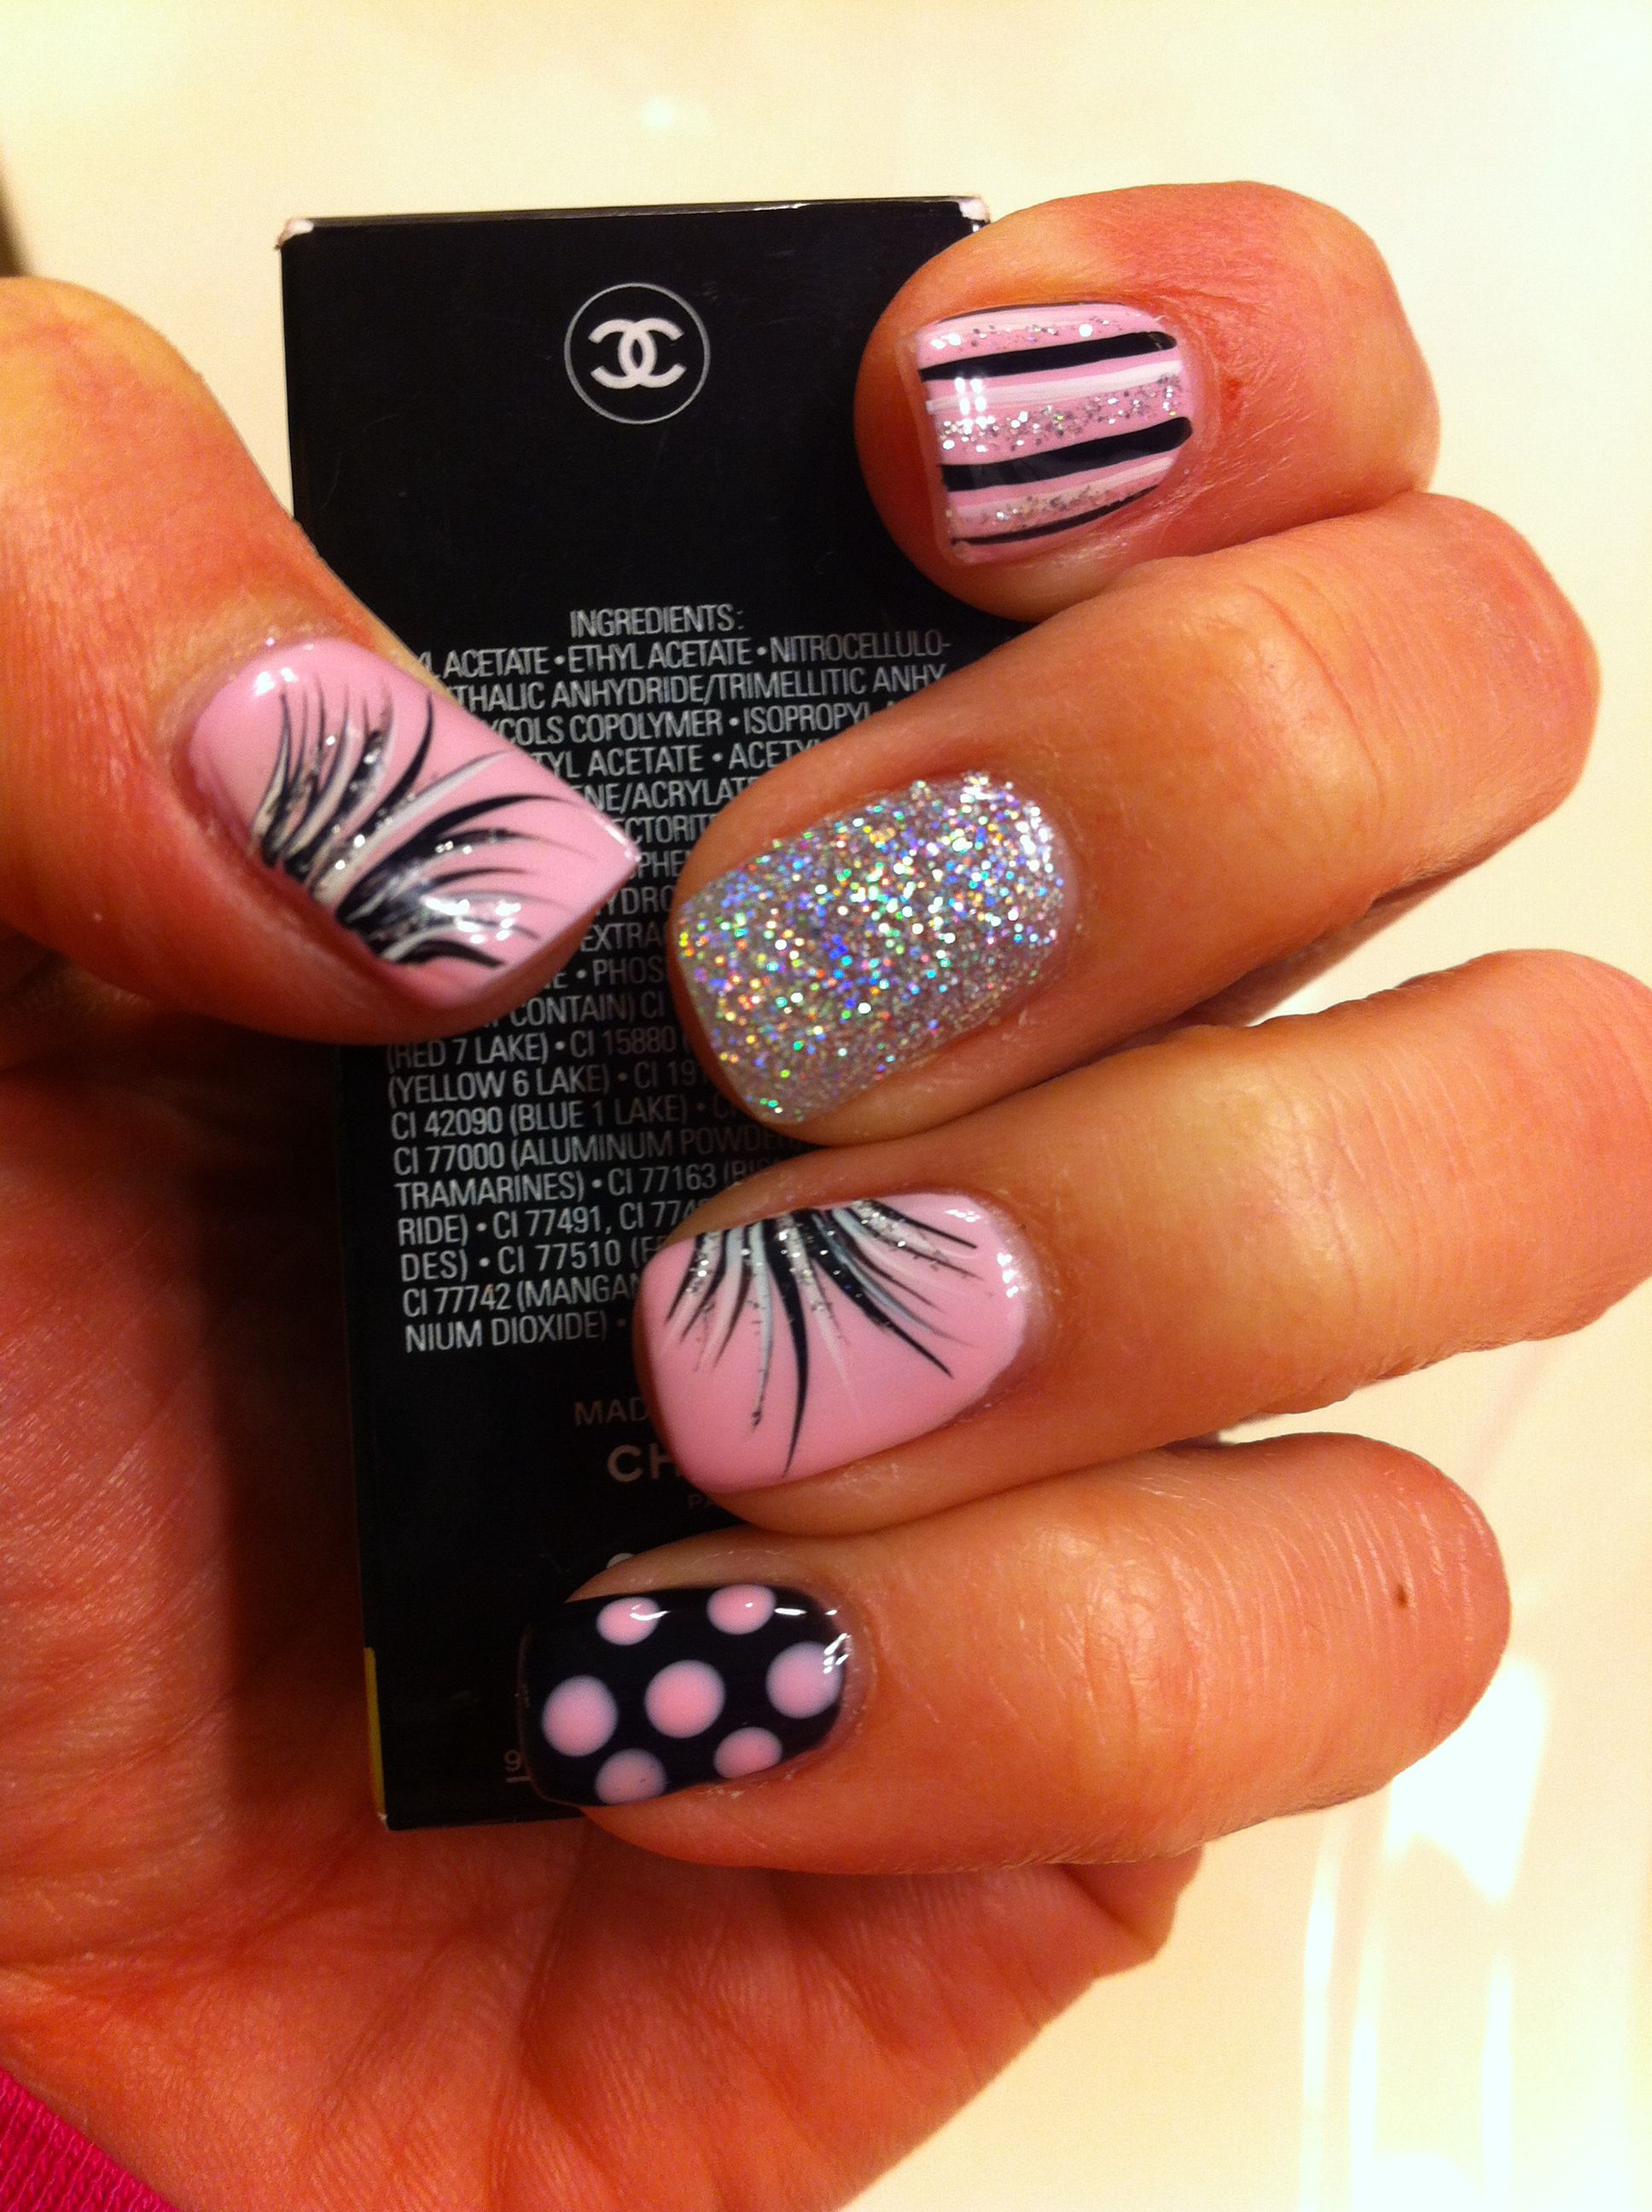 Gel Nageldesign 2015 Strawberry Smoothie Pink/black Gel Nails | Gelish